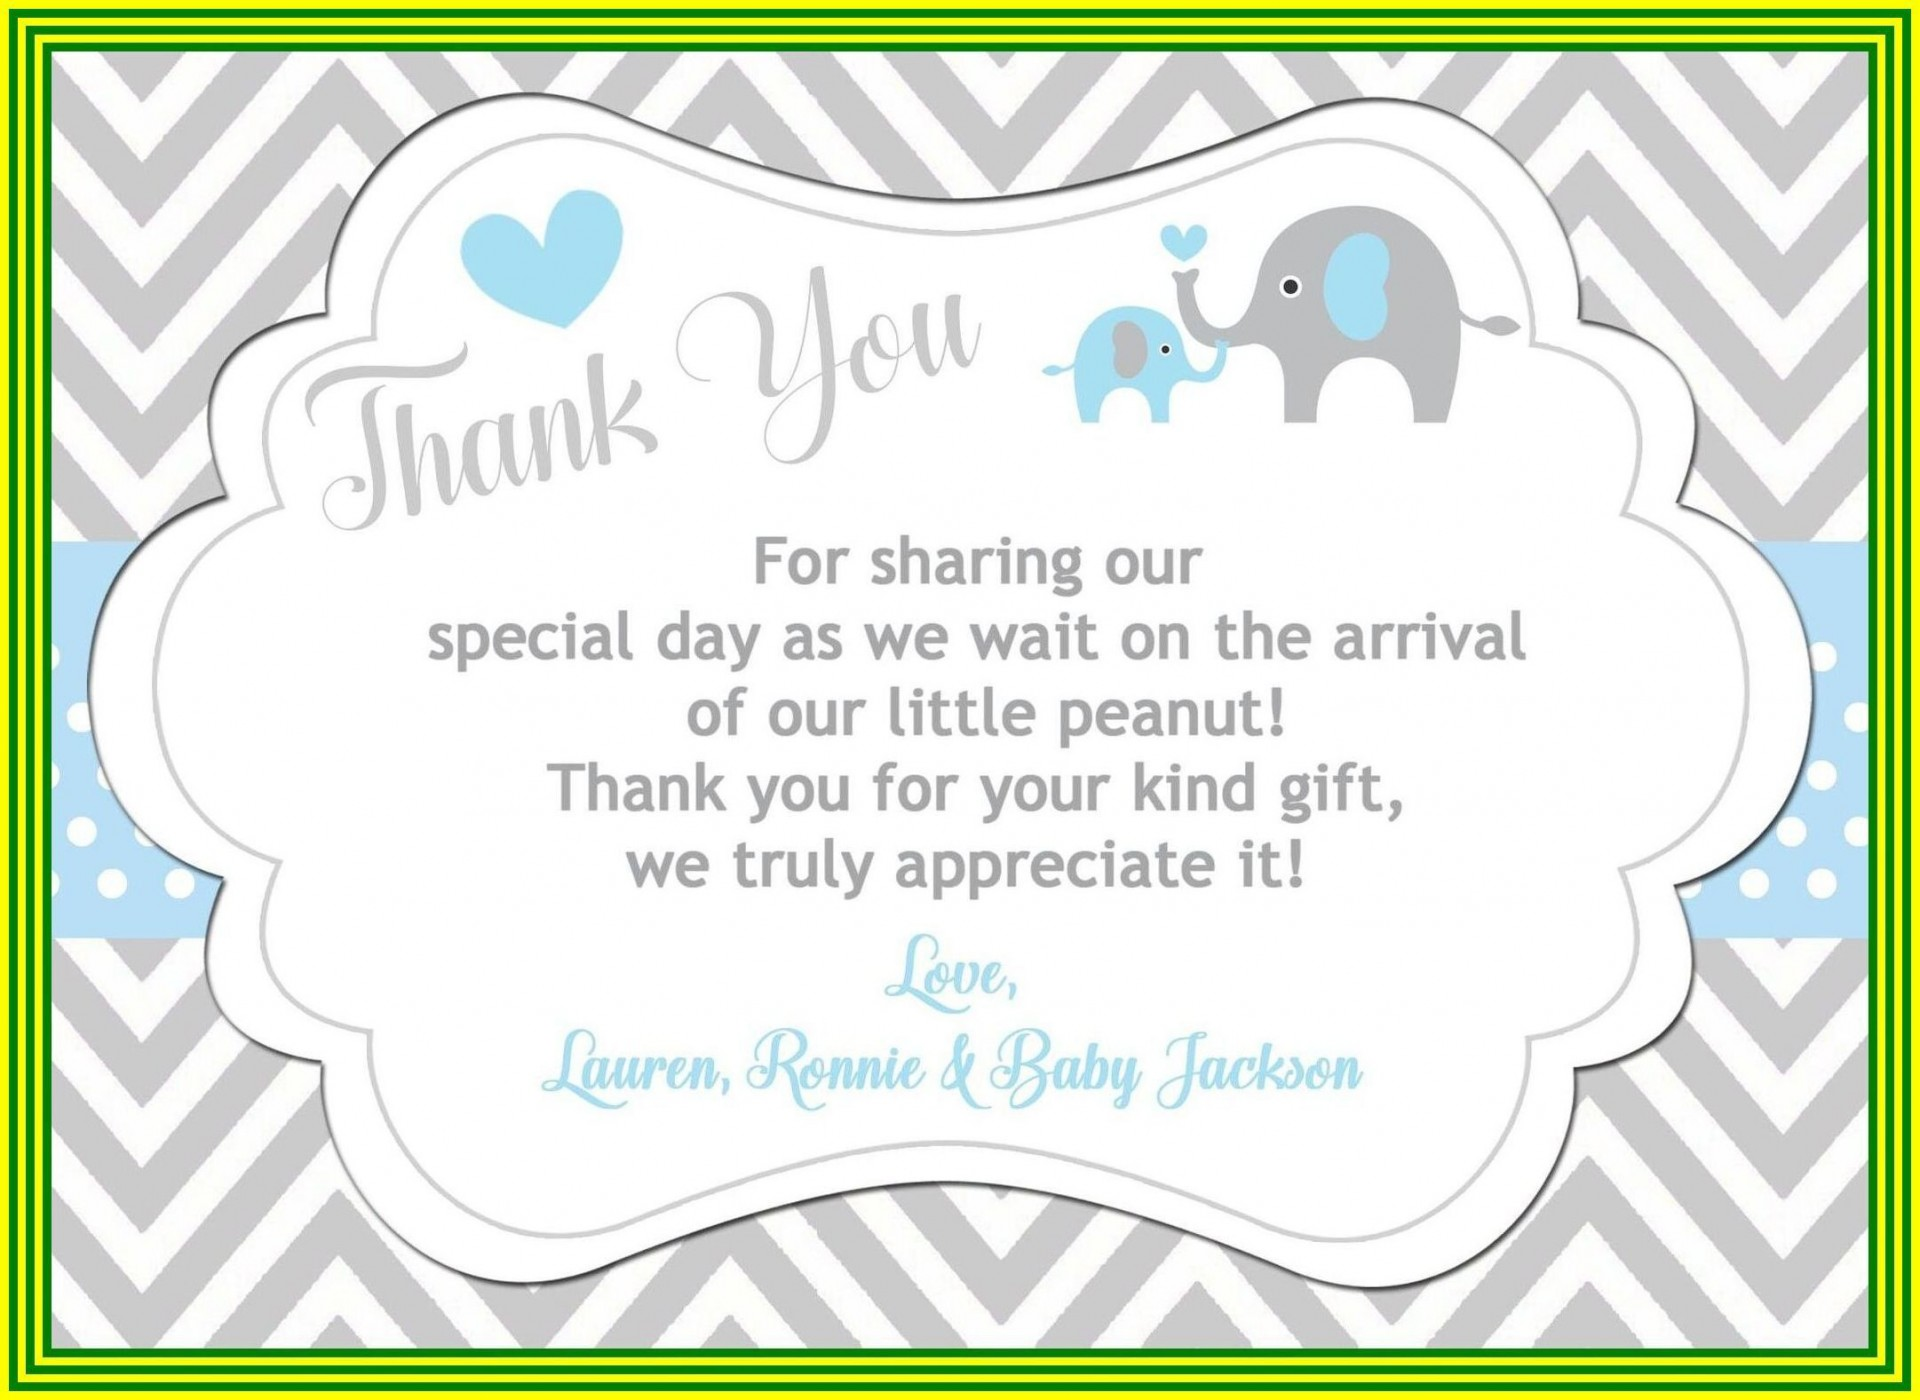 000 Imposing Thank You Card Wording Baby Shower Image  Note For Money Someone Who Didn't Attend Hostes1920